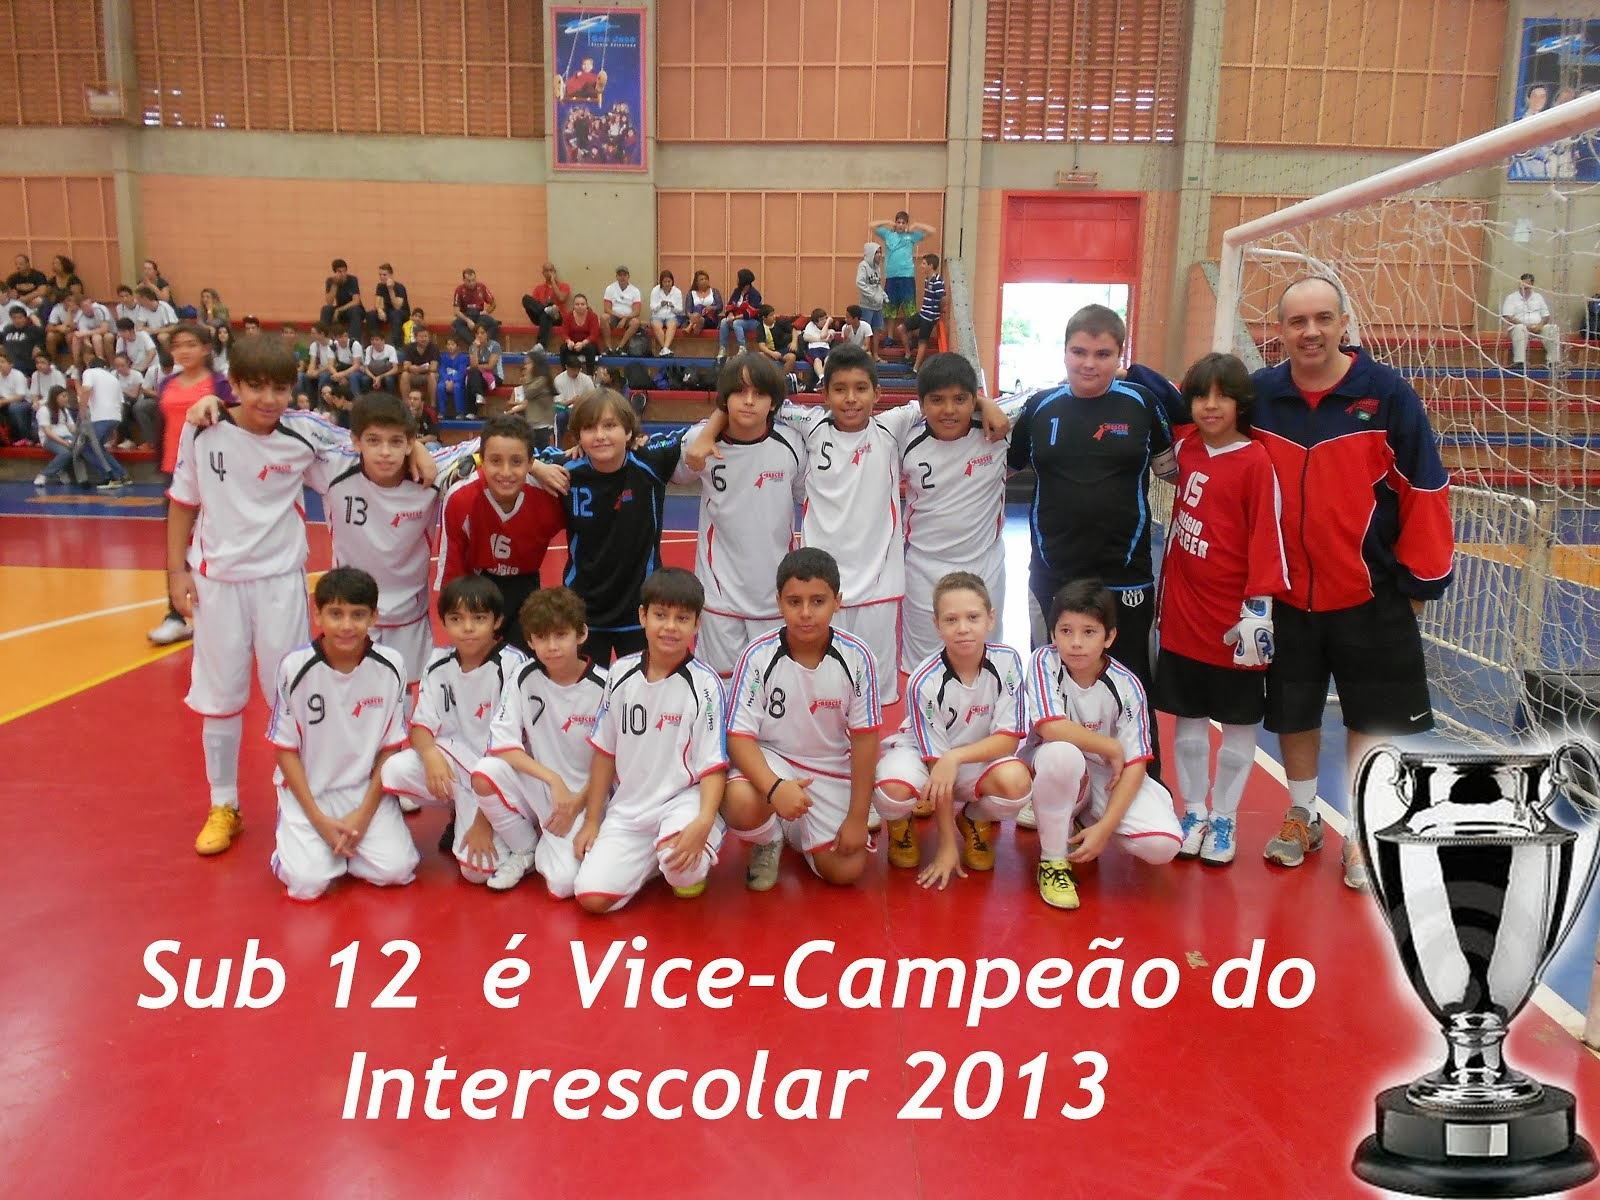 Sub12 é Vice no Interescolar 2013